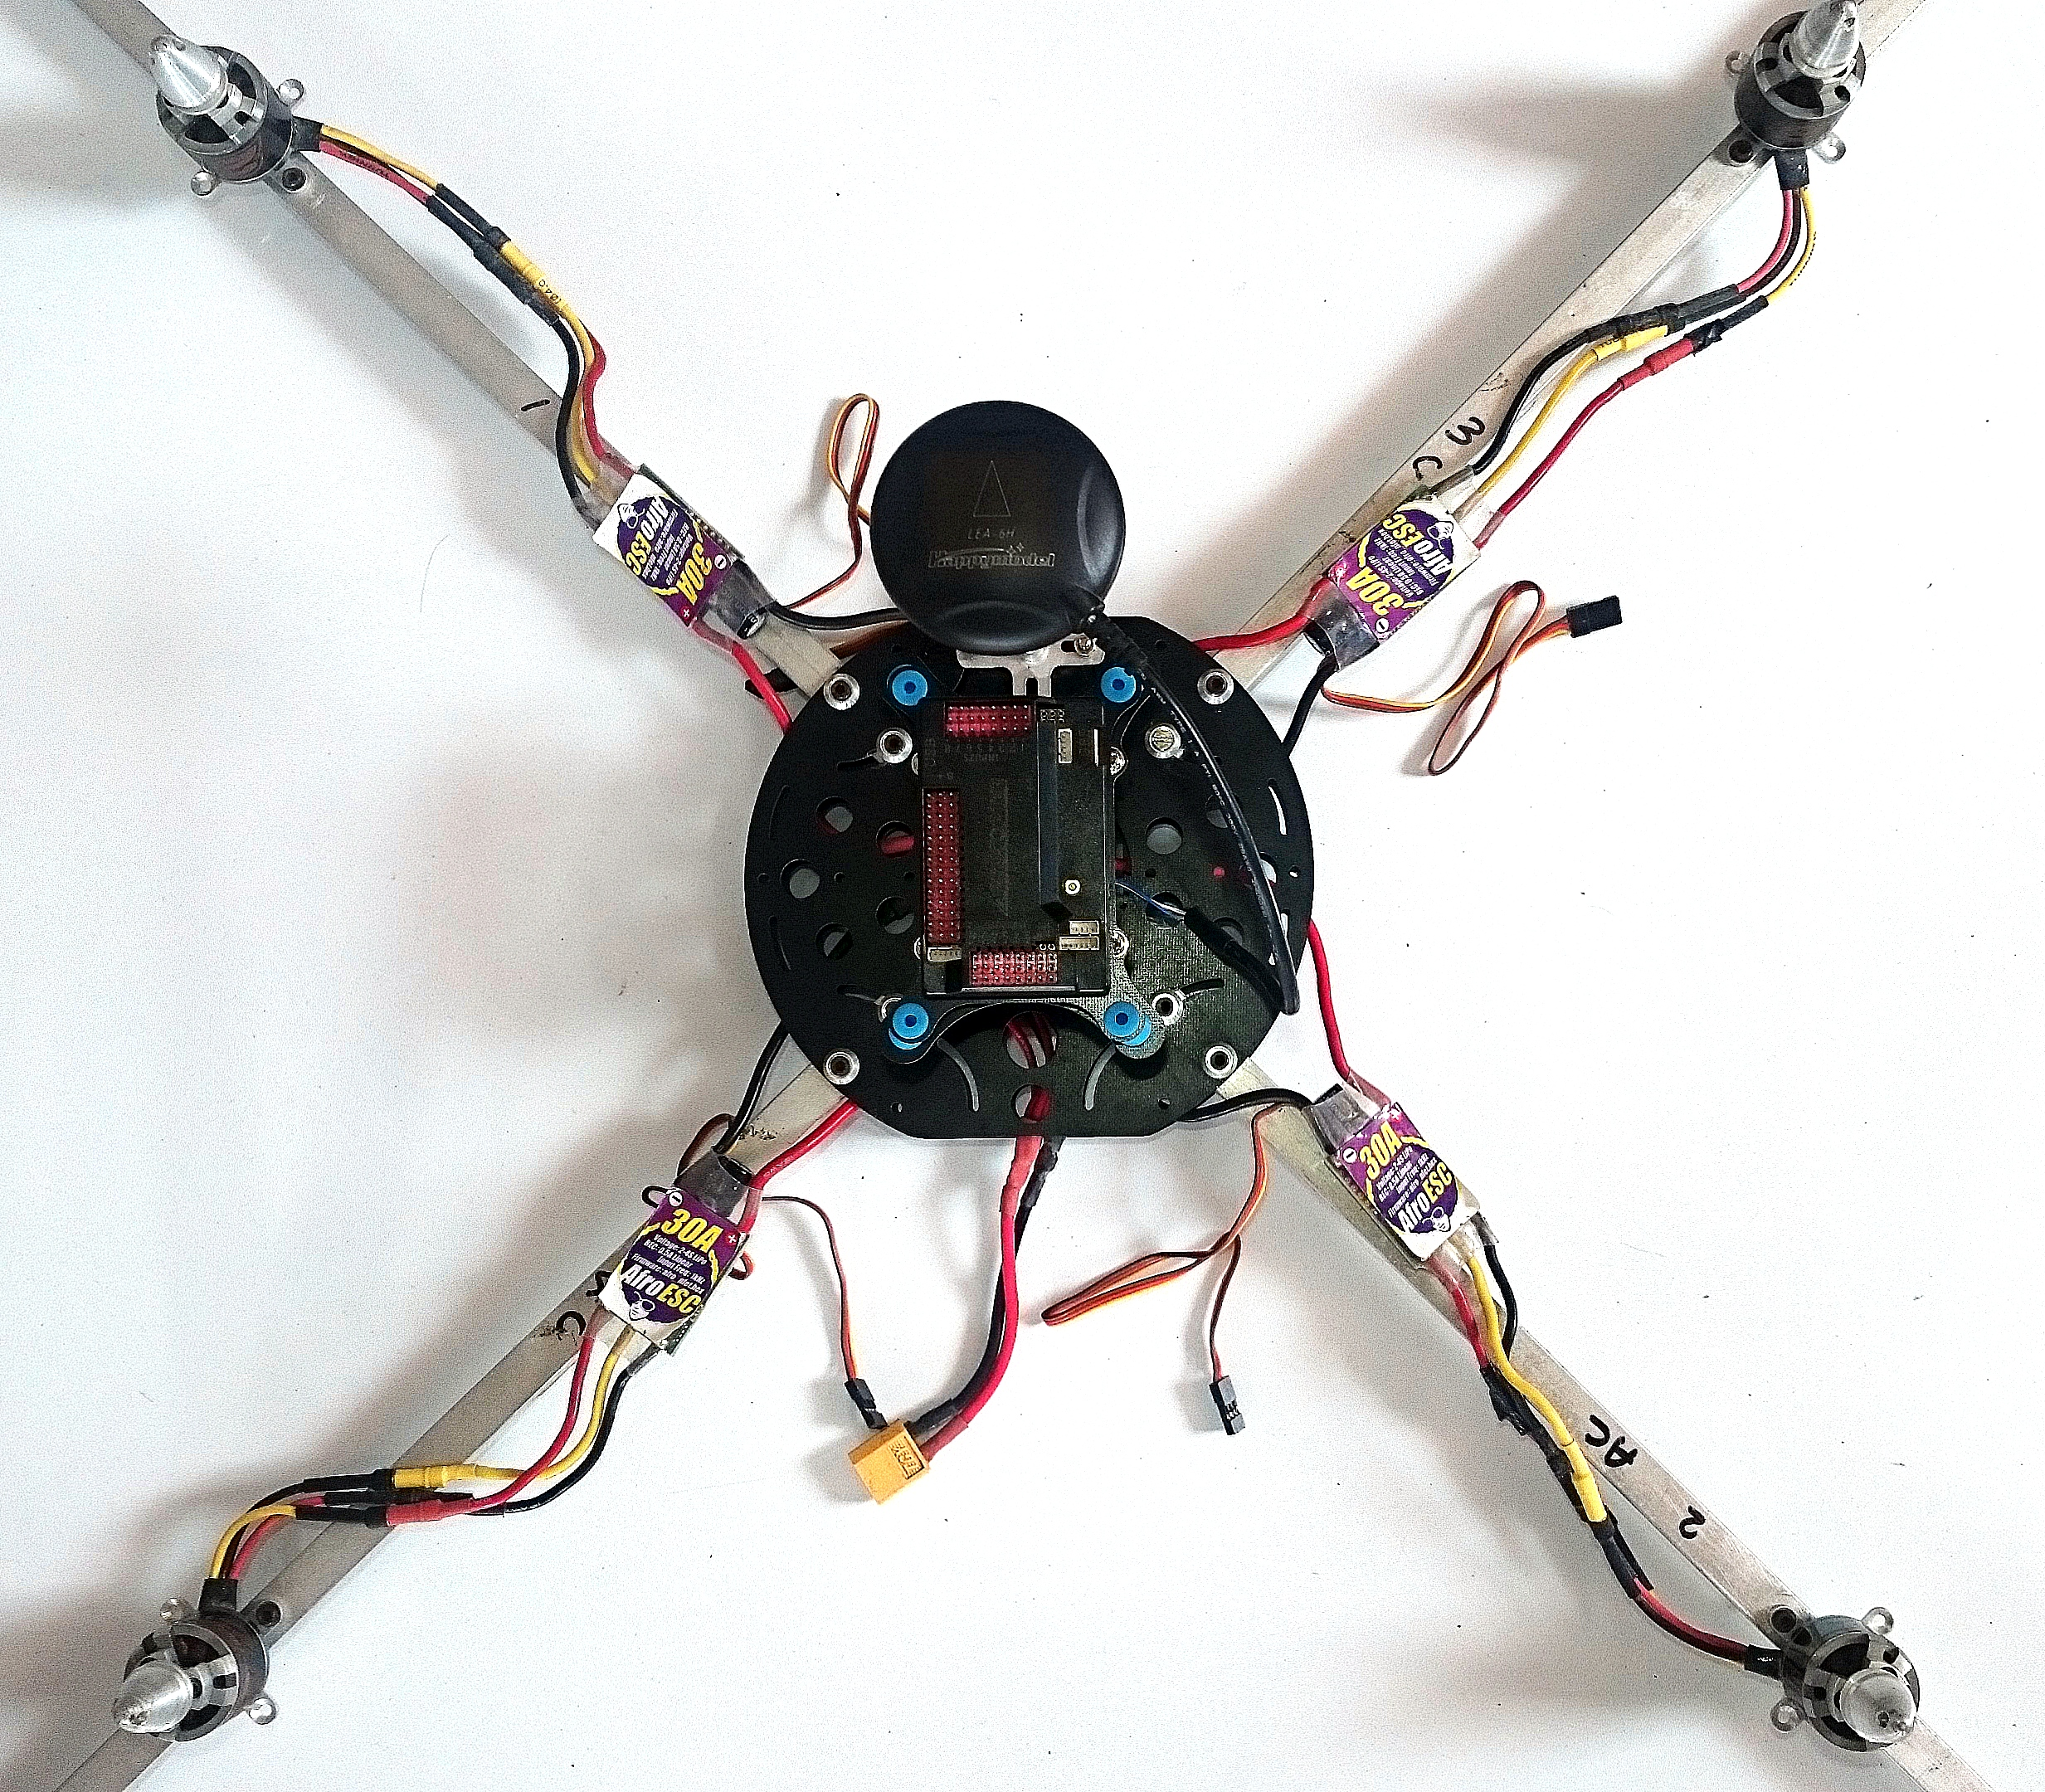 Picture of Attaching the APM Assembly and GPS Assembly to the Body